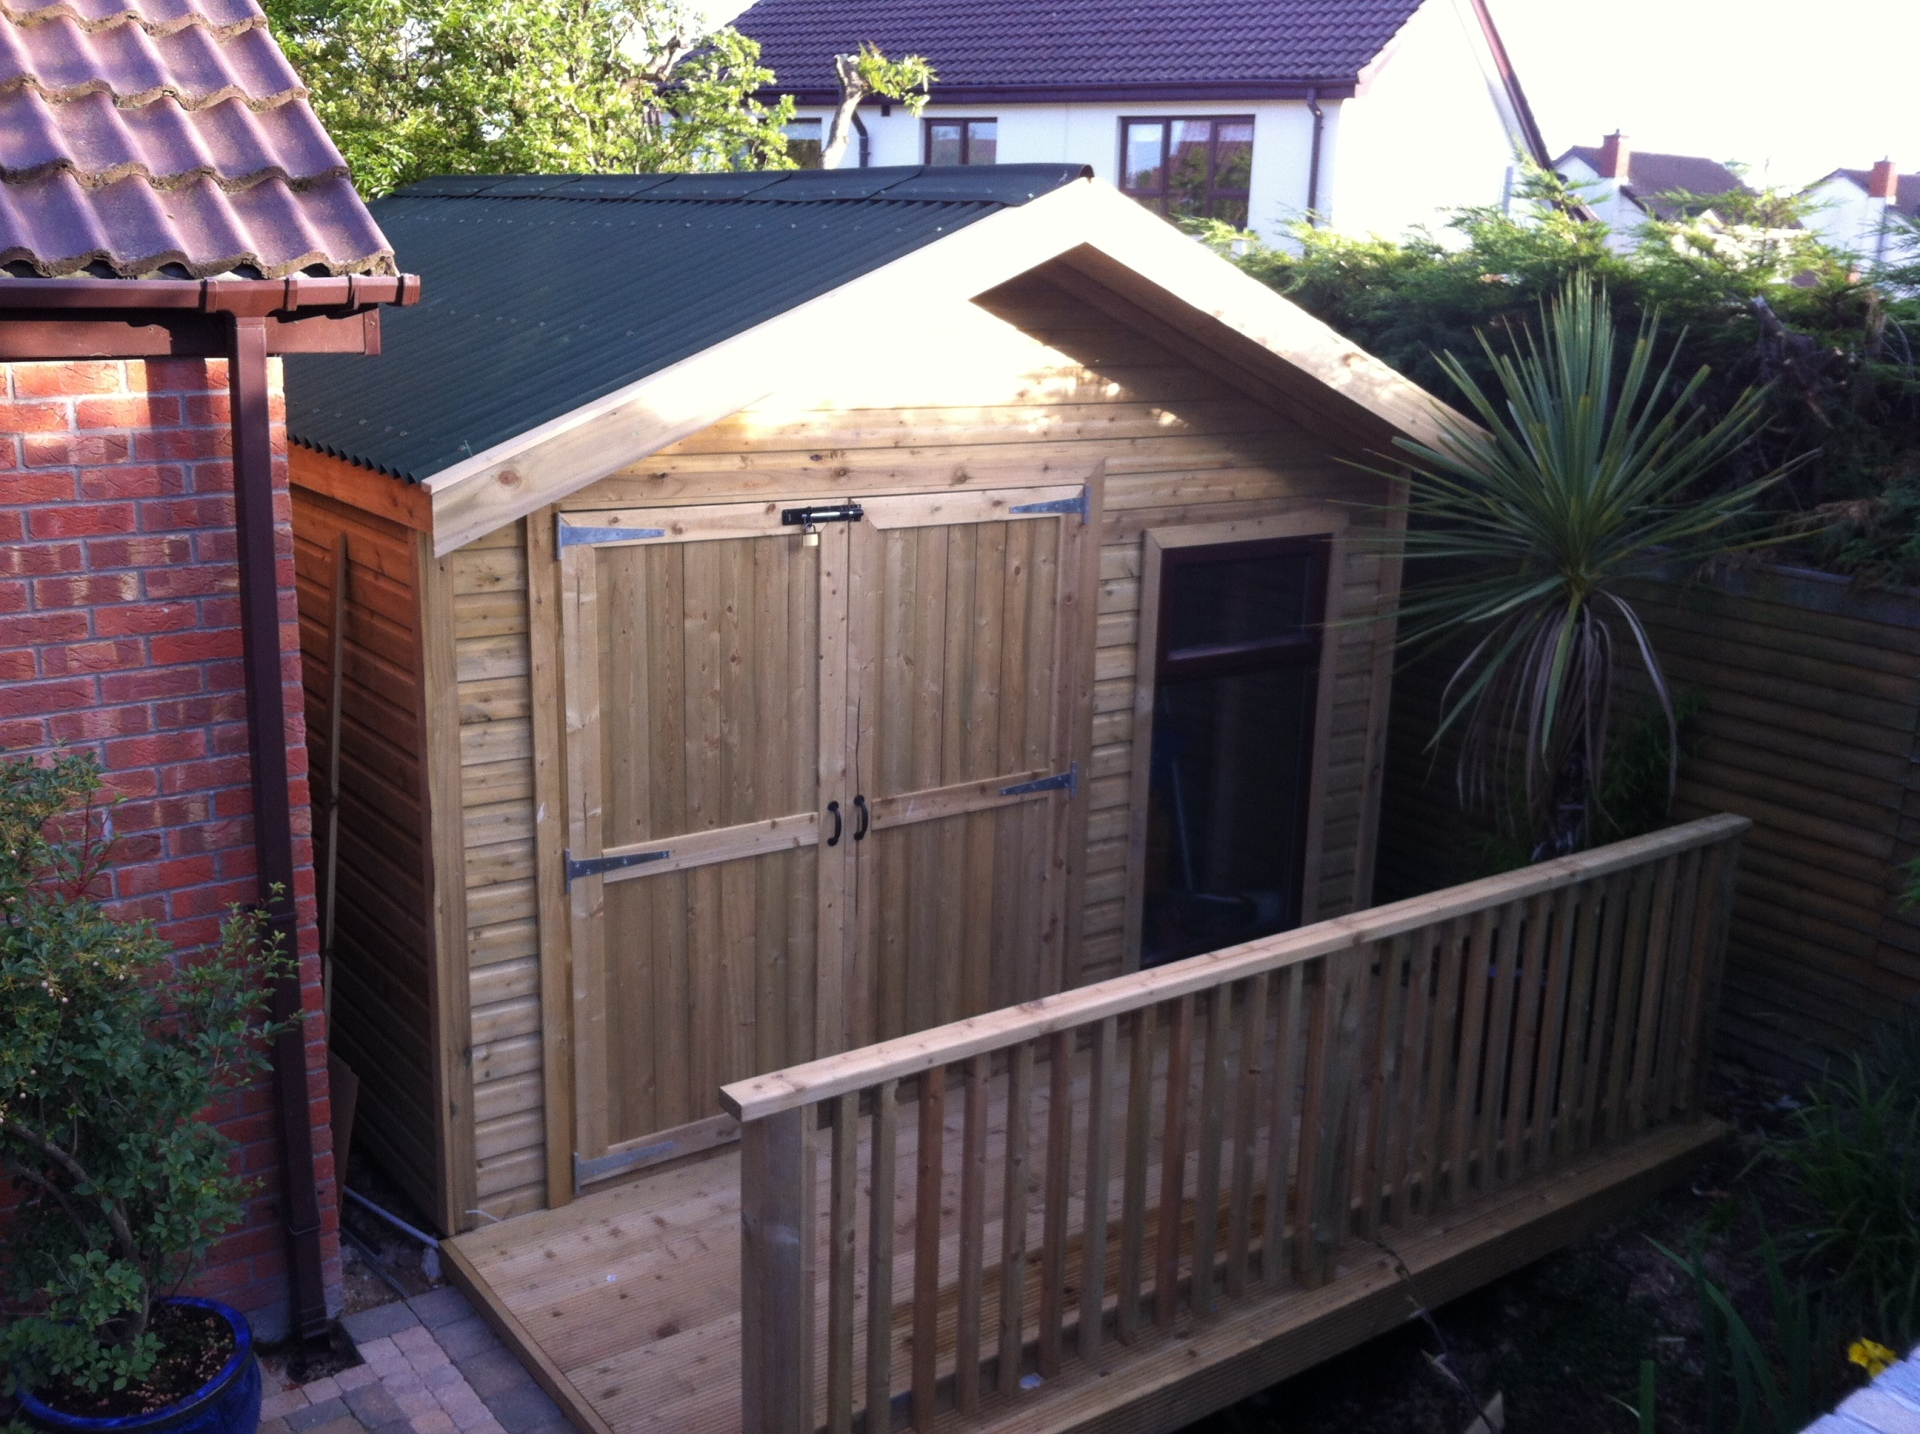 Garden Sheds, Garden Rooms, Timber Structures